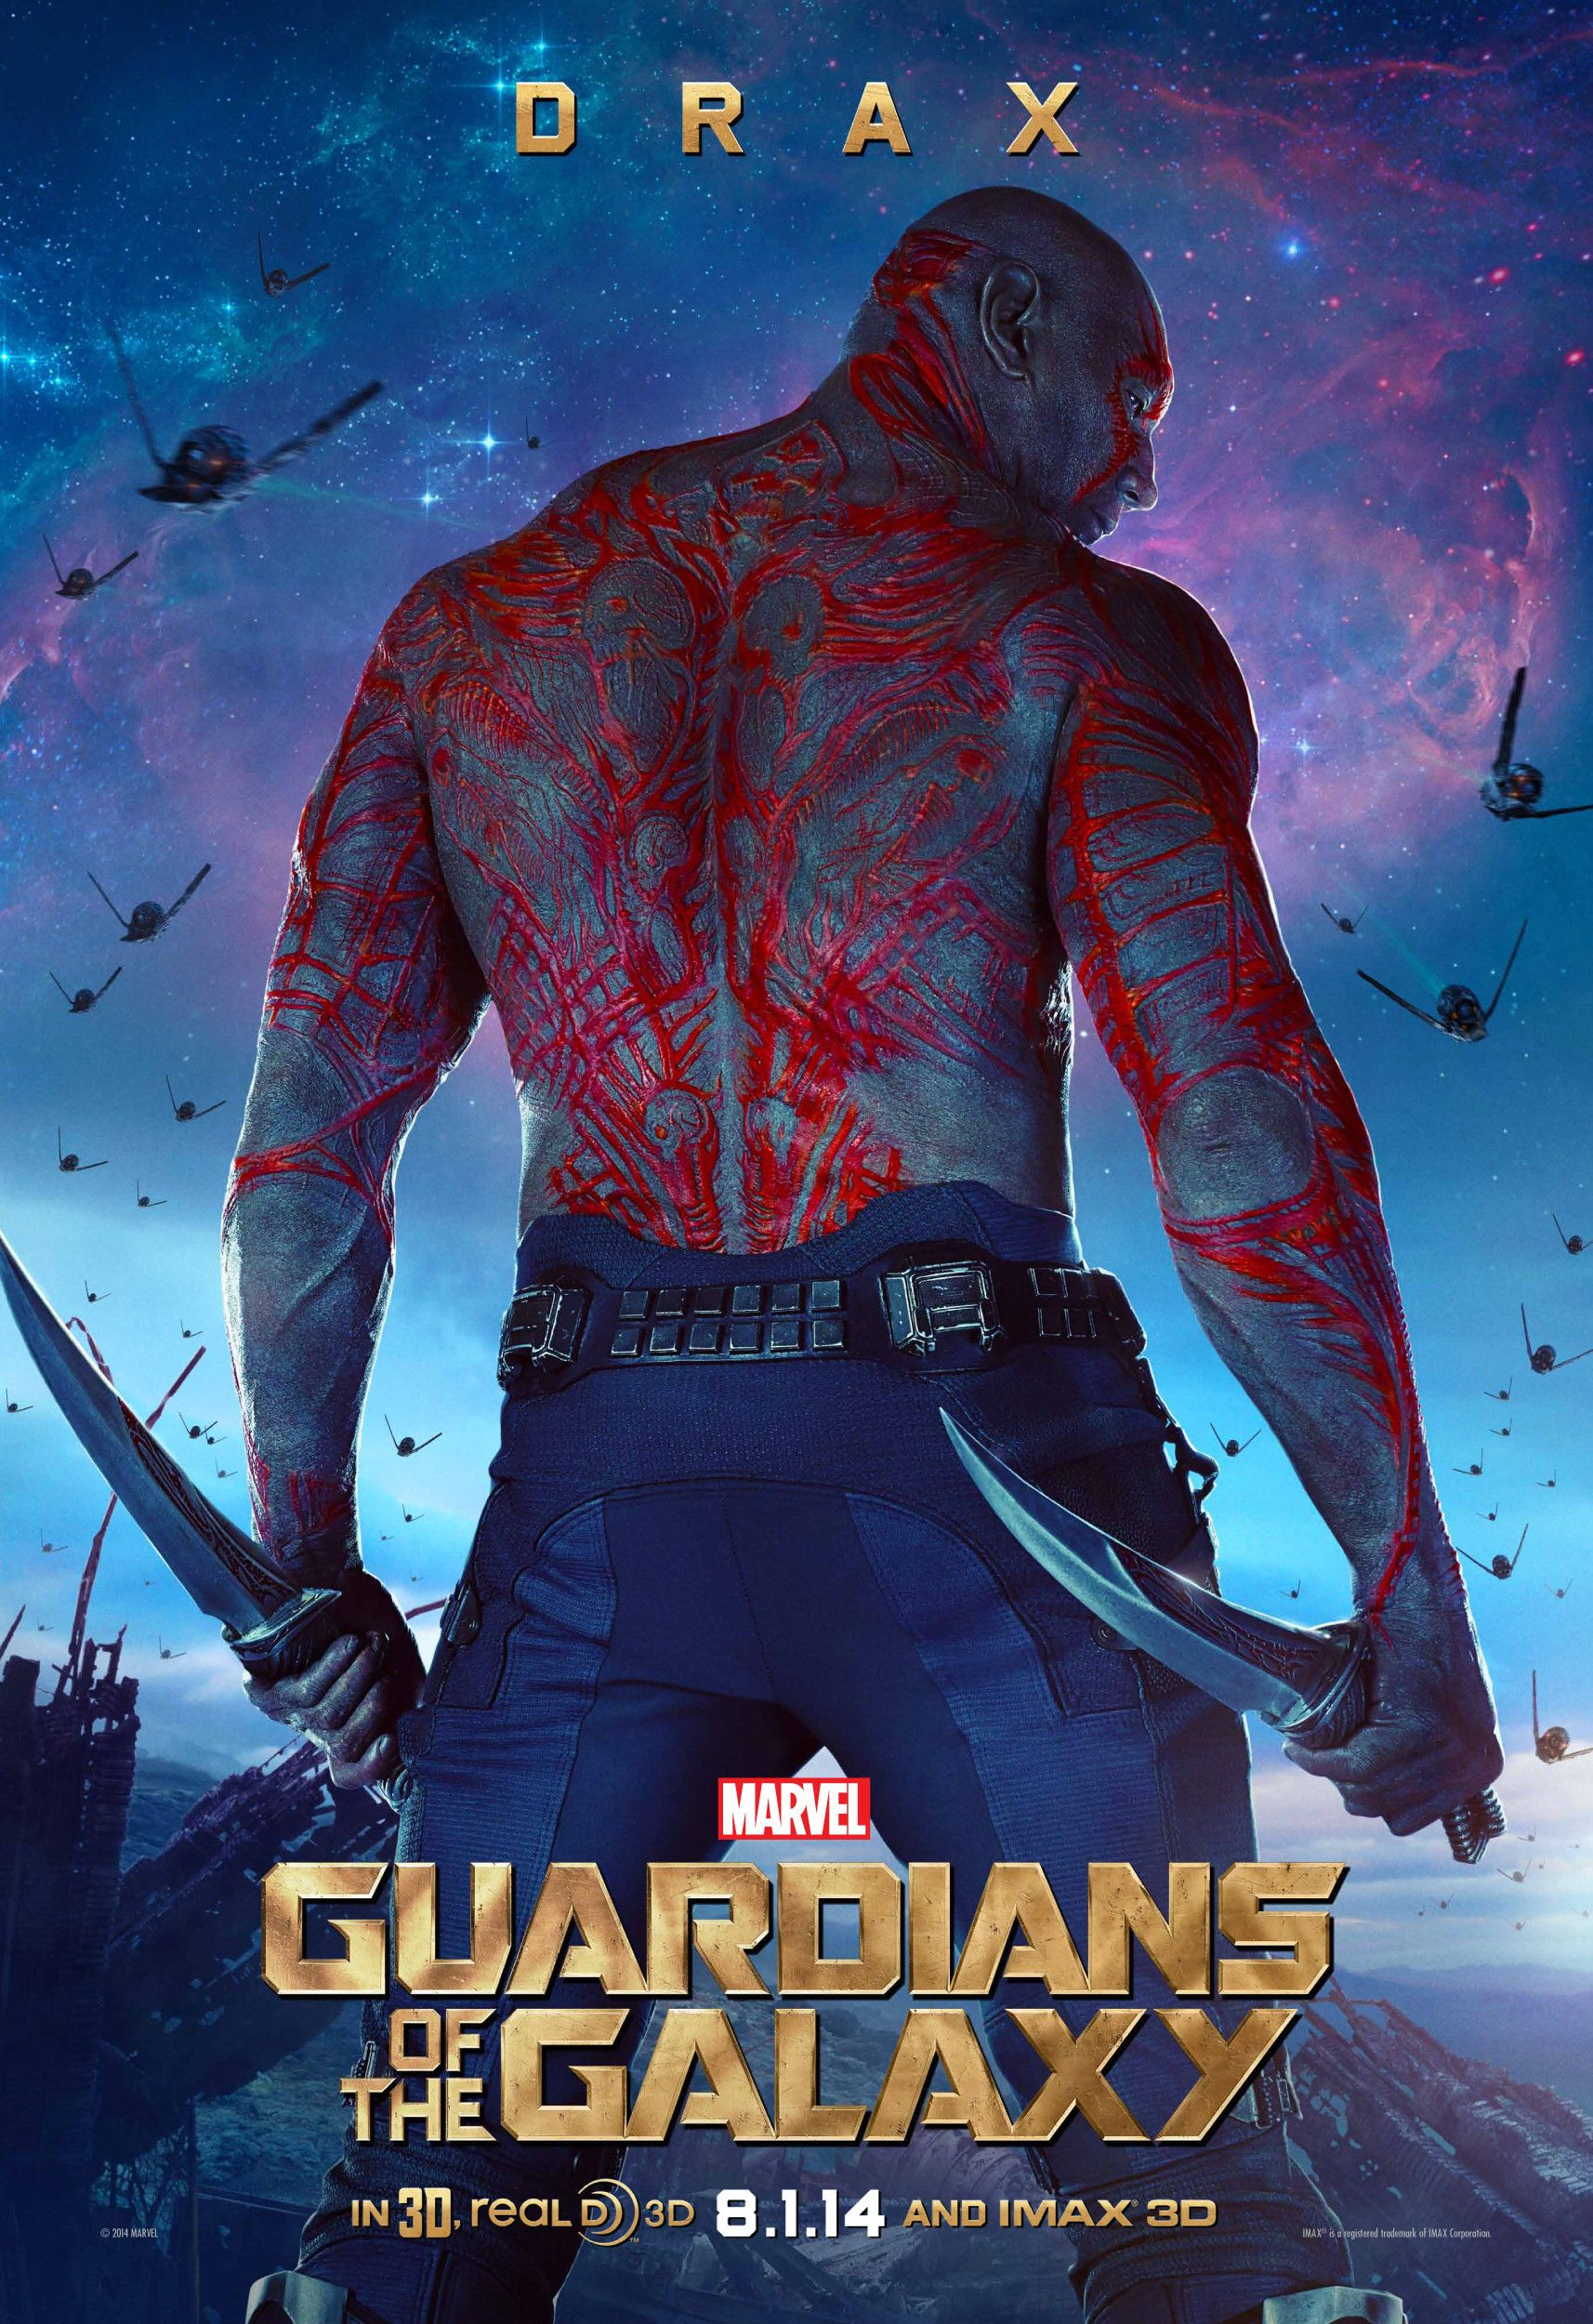 GUARDIANS OF THE GALAXY Posters: Star-Lord and Drax | Collider